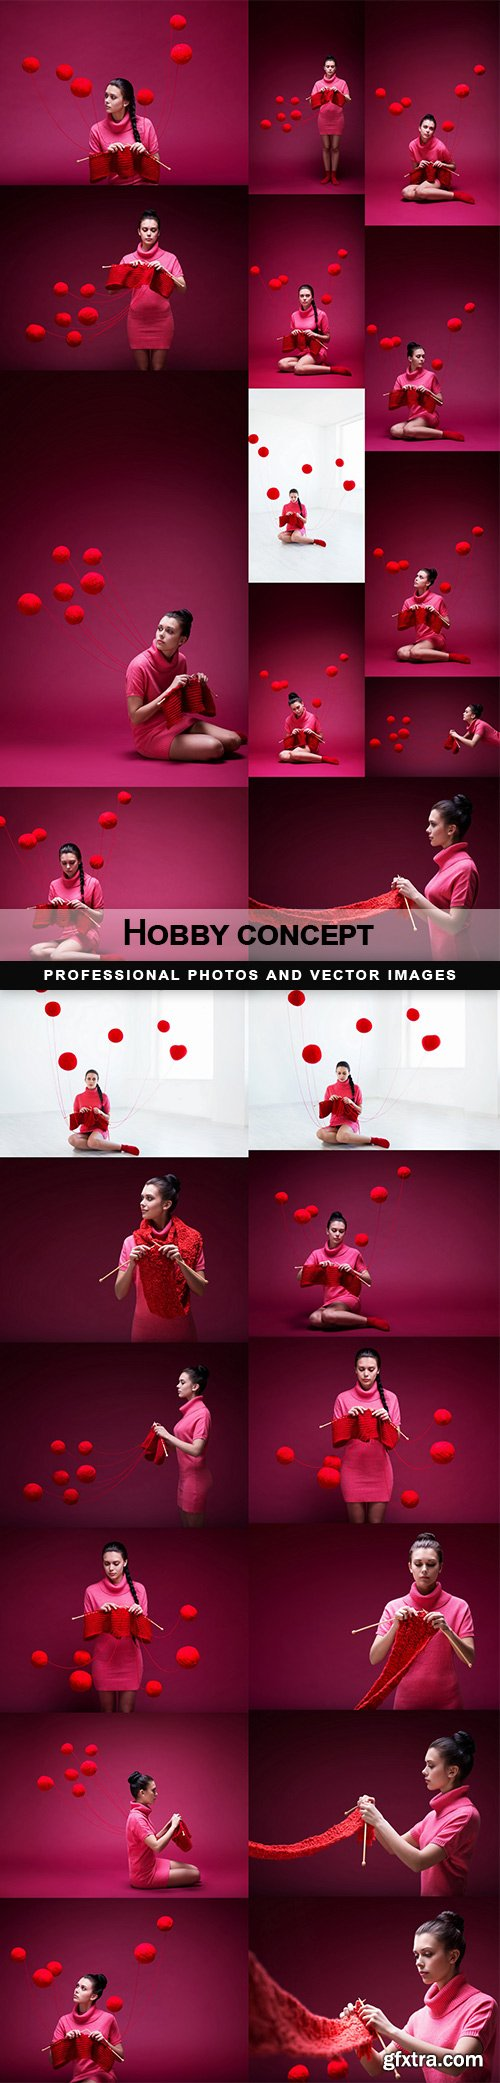 Hobby concept